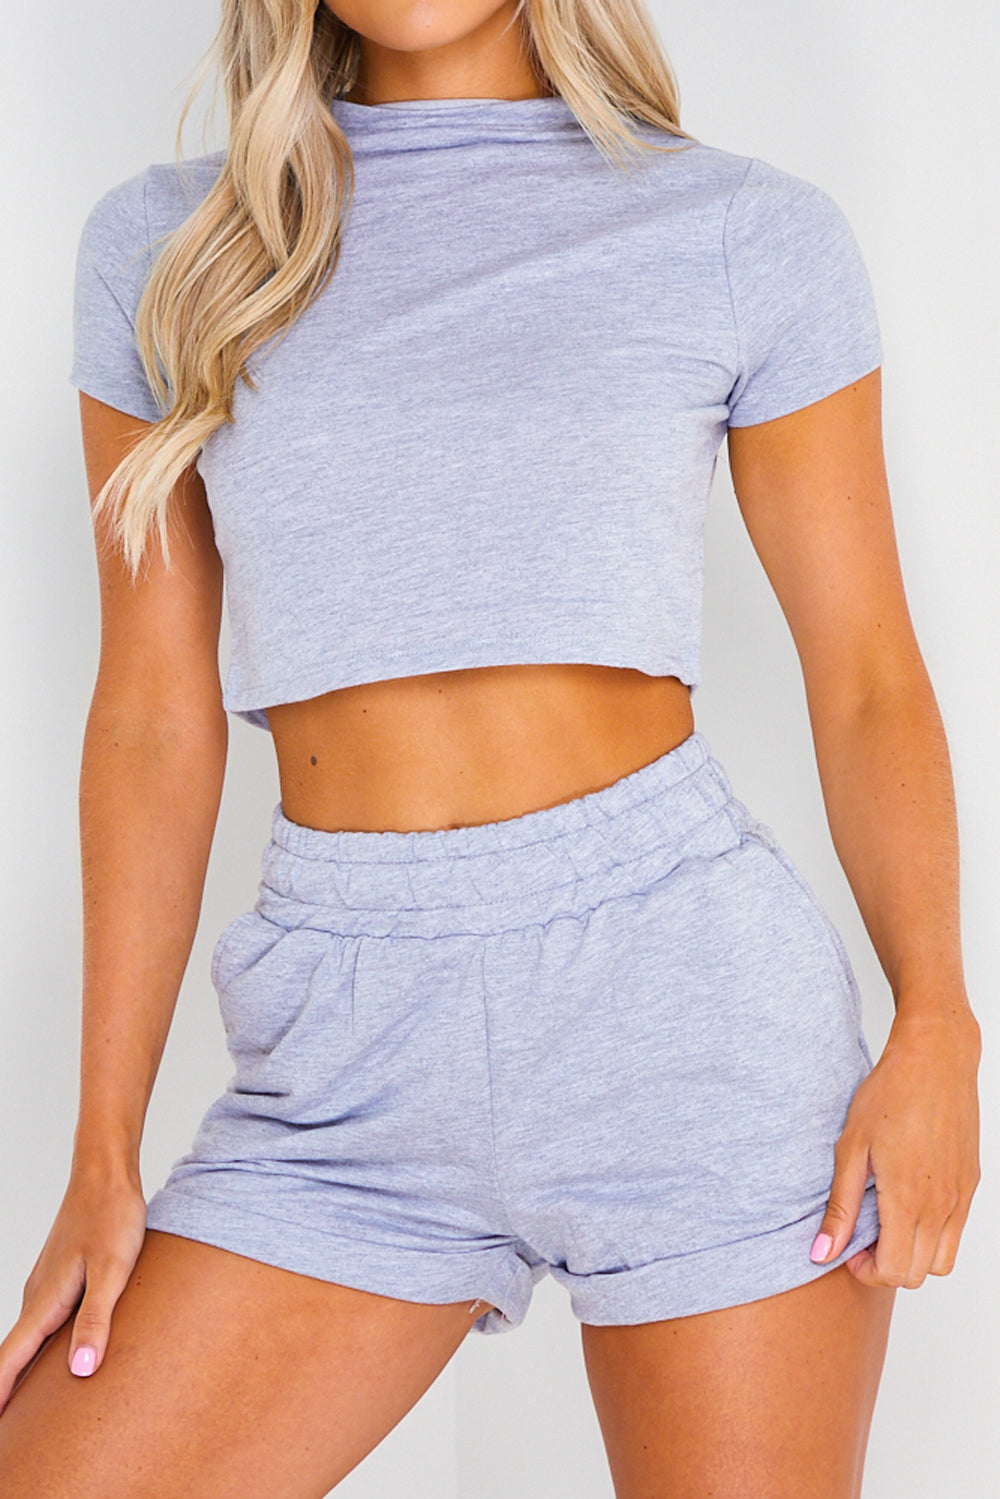 Grey High Neck Crop Top and Shorts Co-ord Set